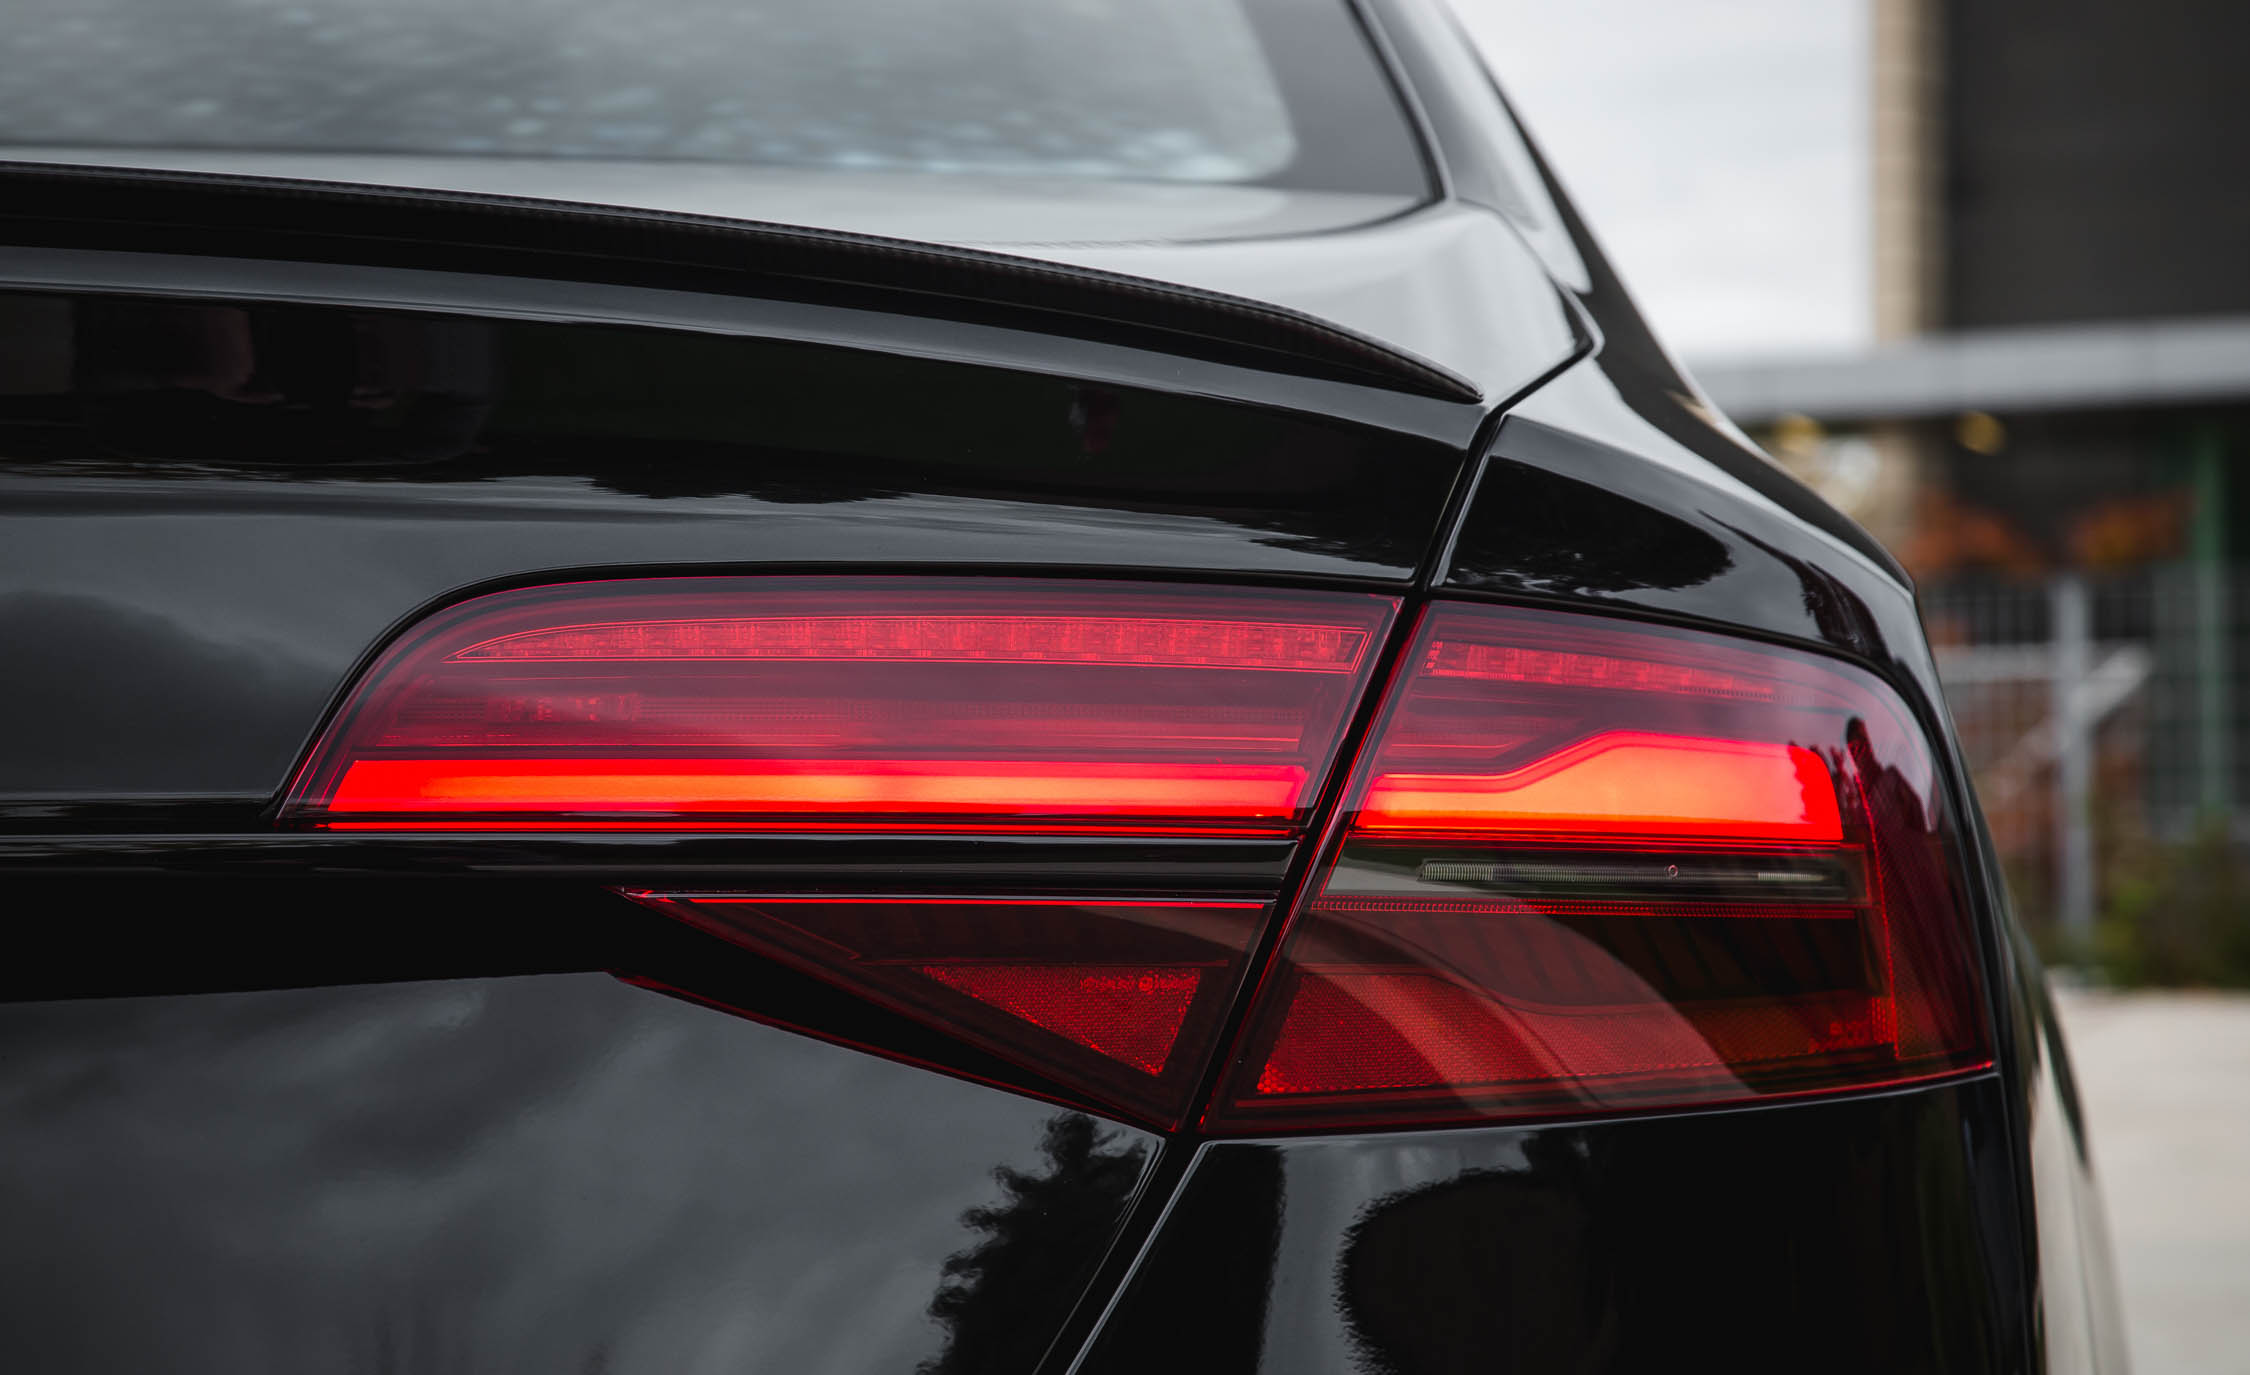 2017 Audi S8 Plus Exterior View Taillight (Photo 11 of 36)